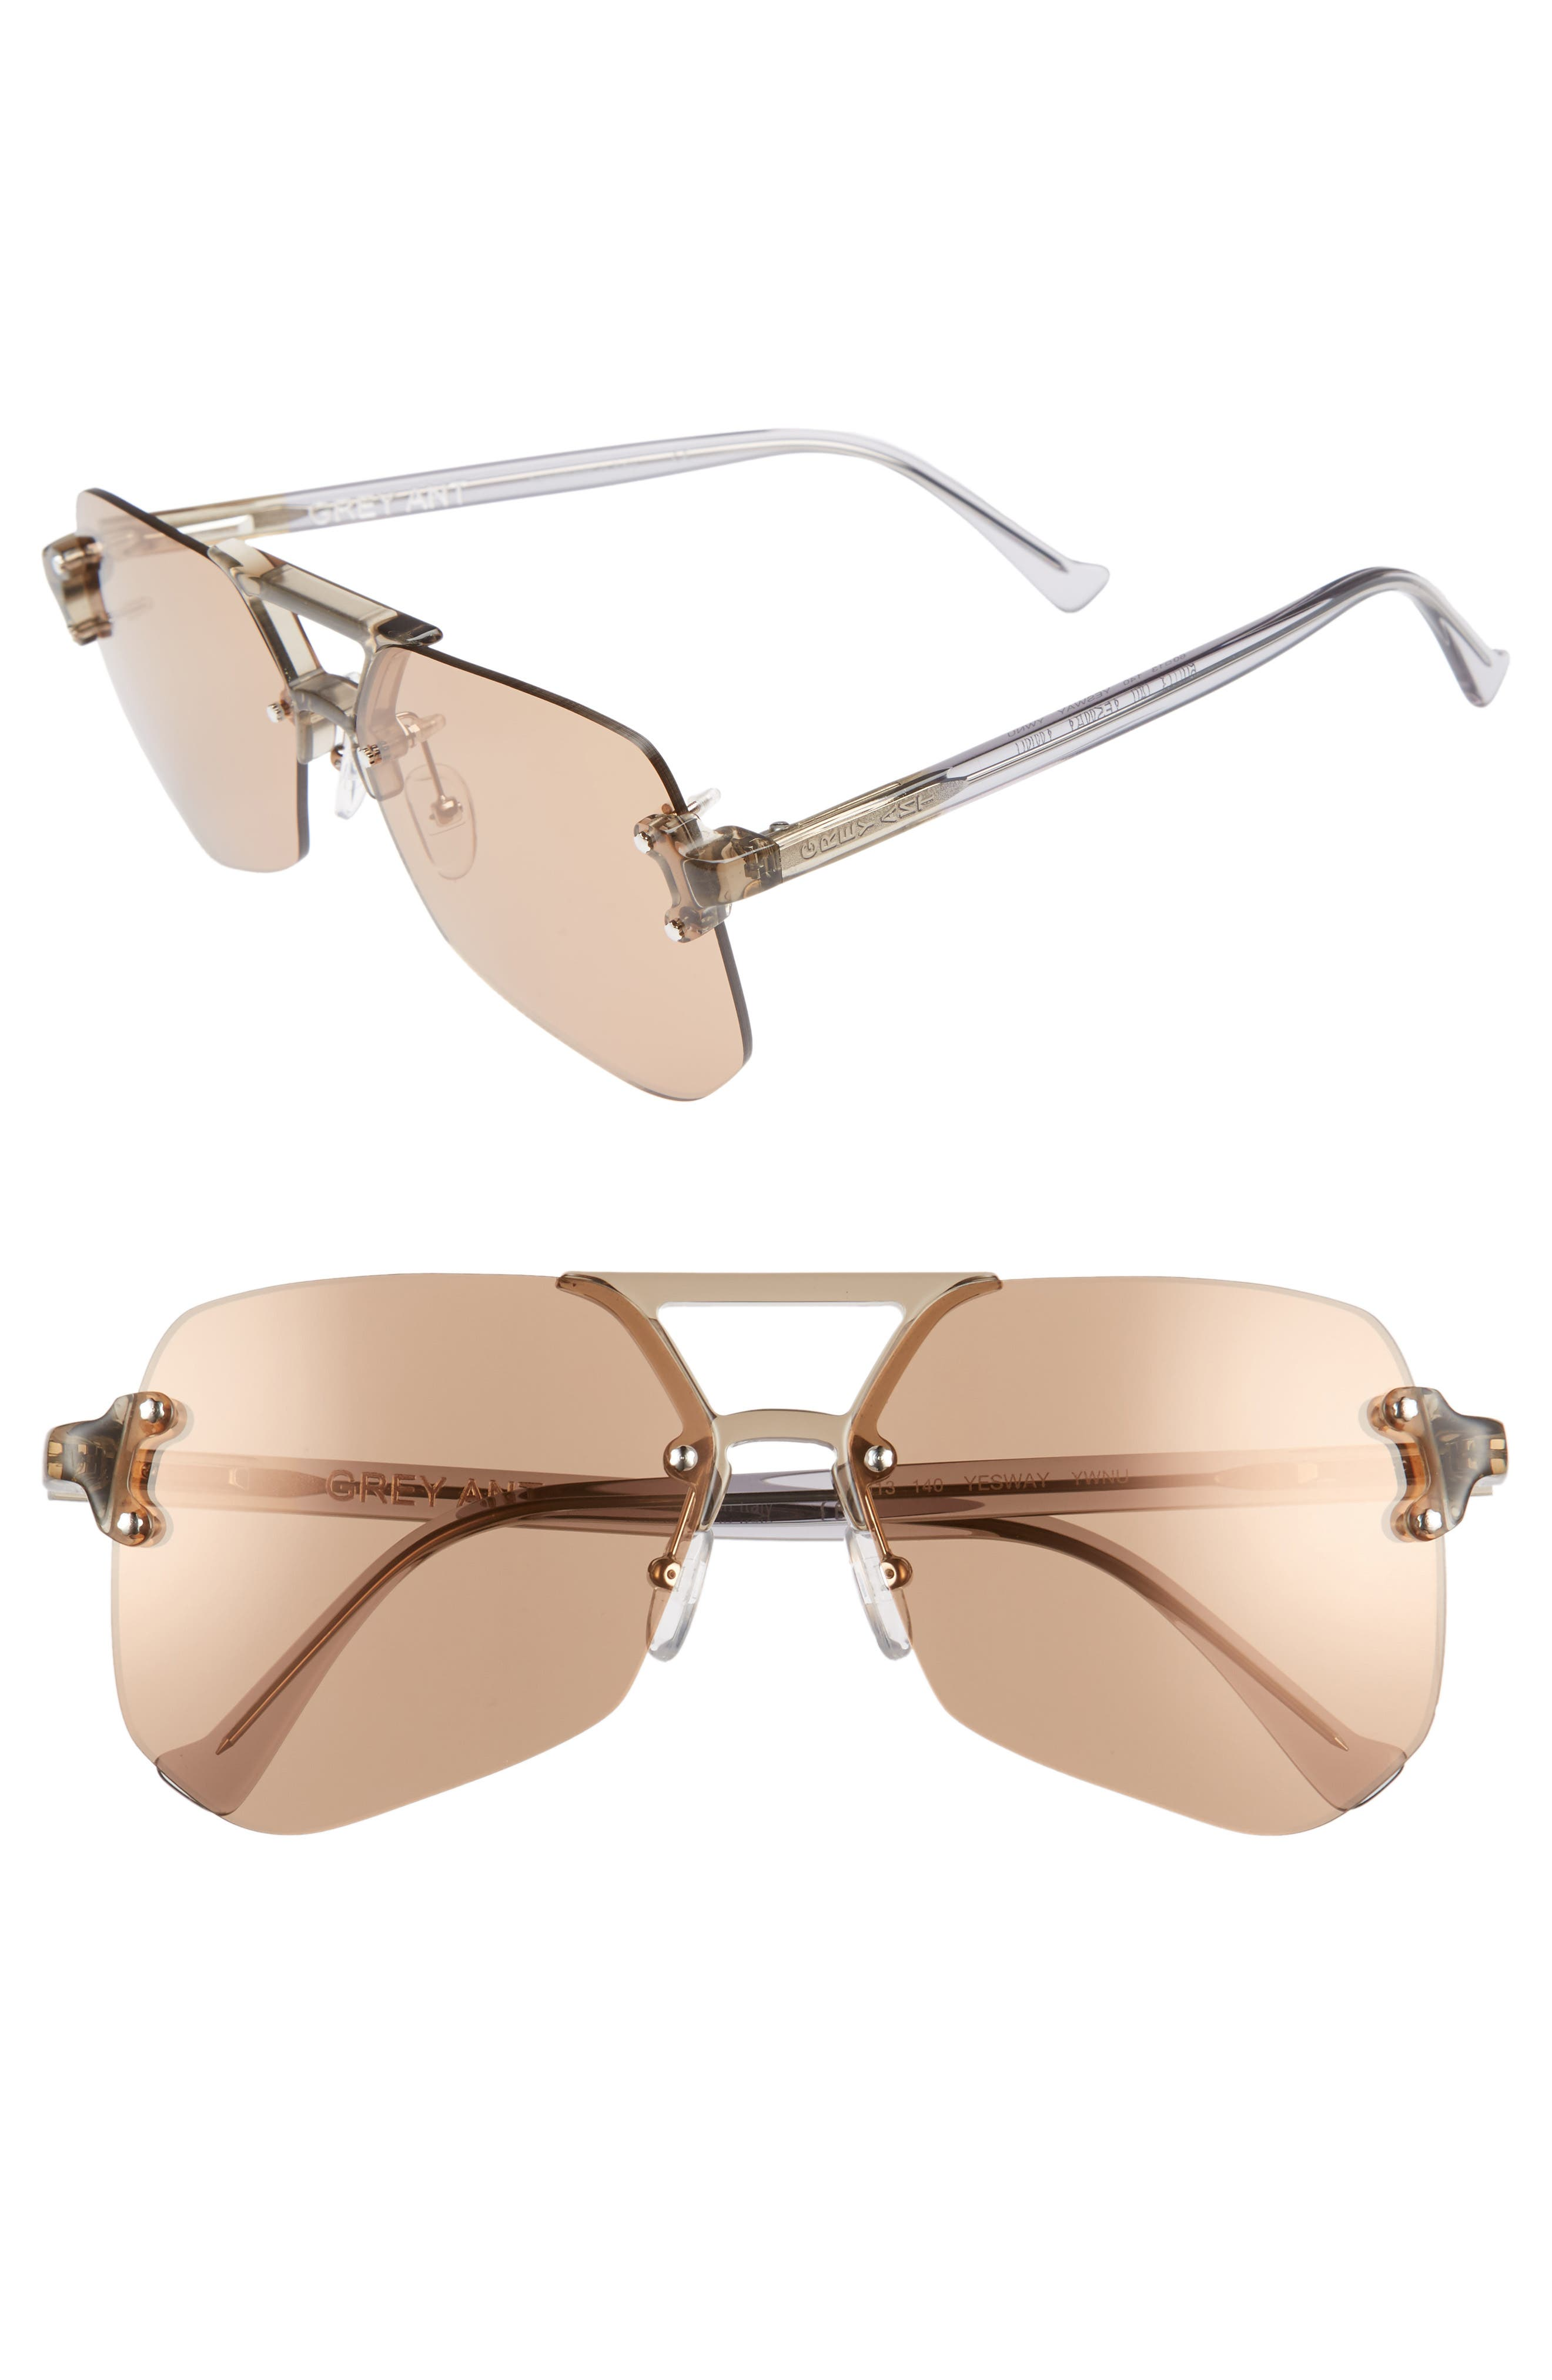 Yesway 60mm Sunglasses,                         Main,                         color, Tan Lens/ Silver Hardware